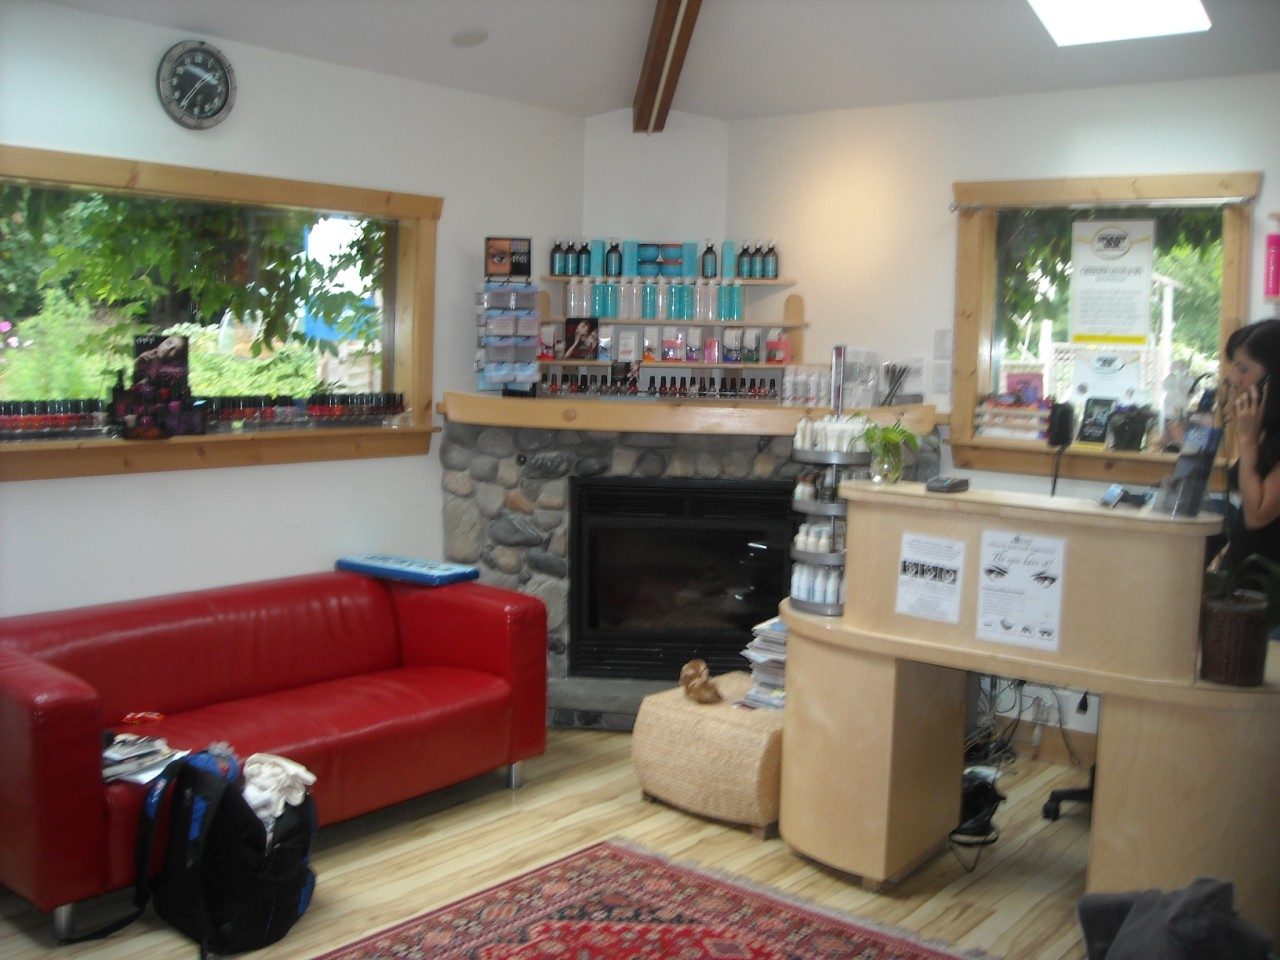 Reception area with fireplace